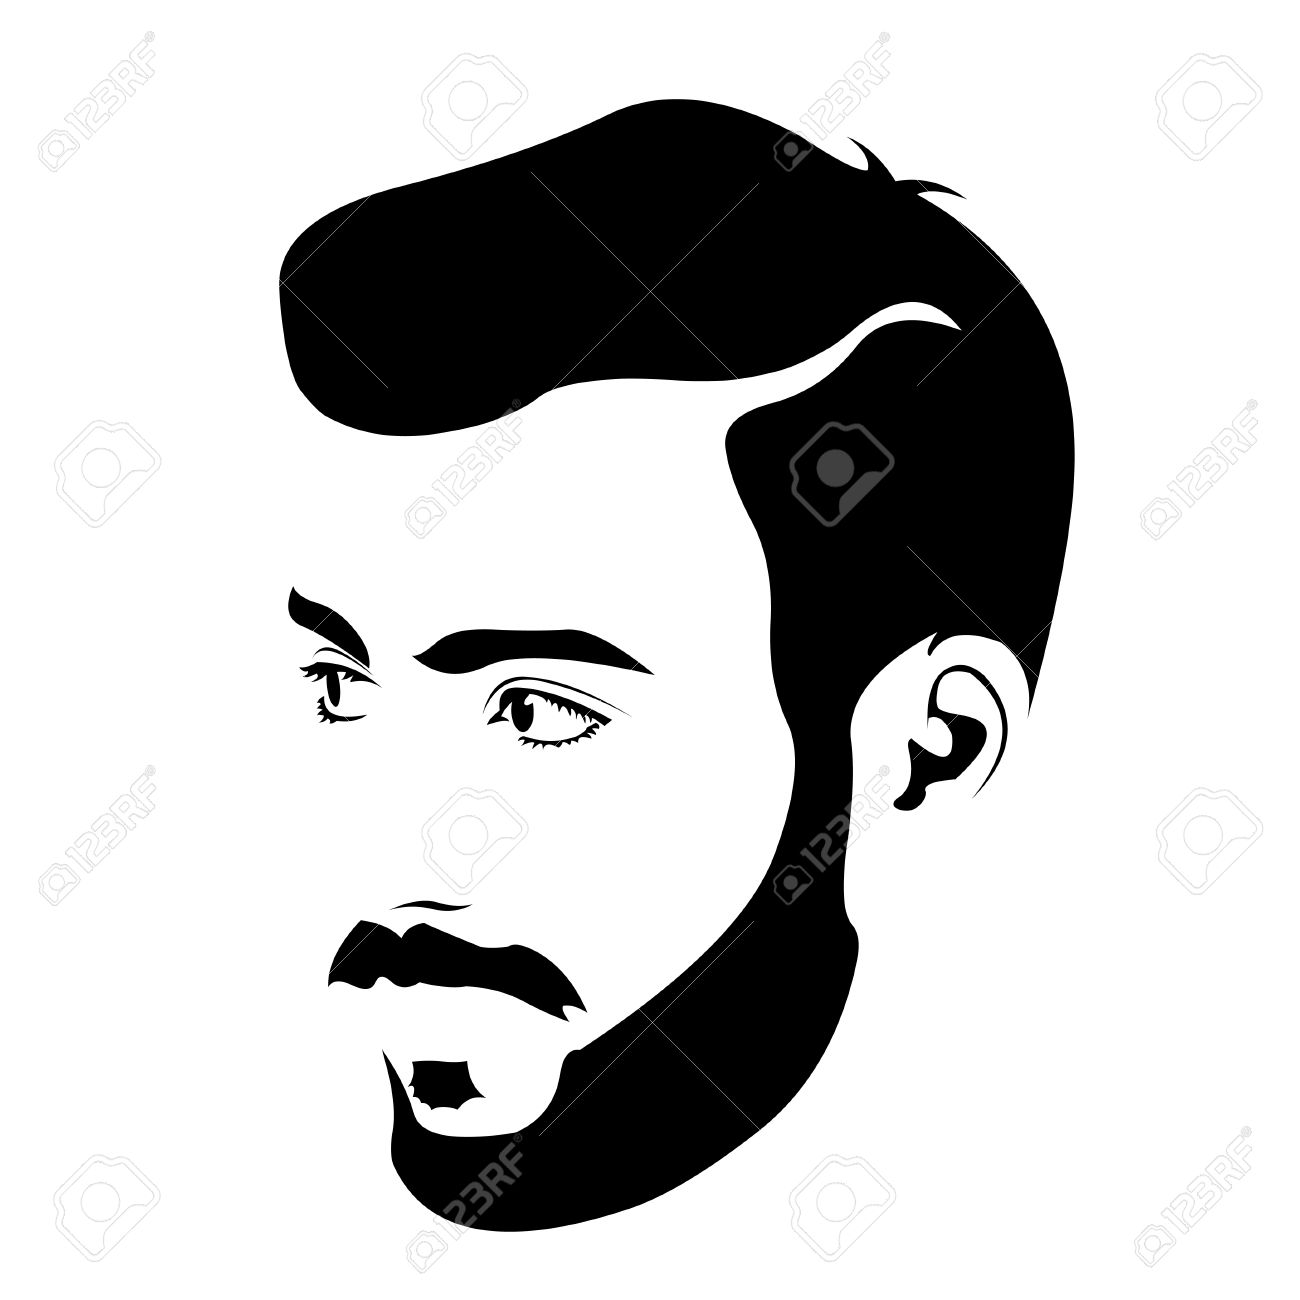 Bearded young man clipart.